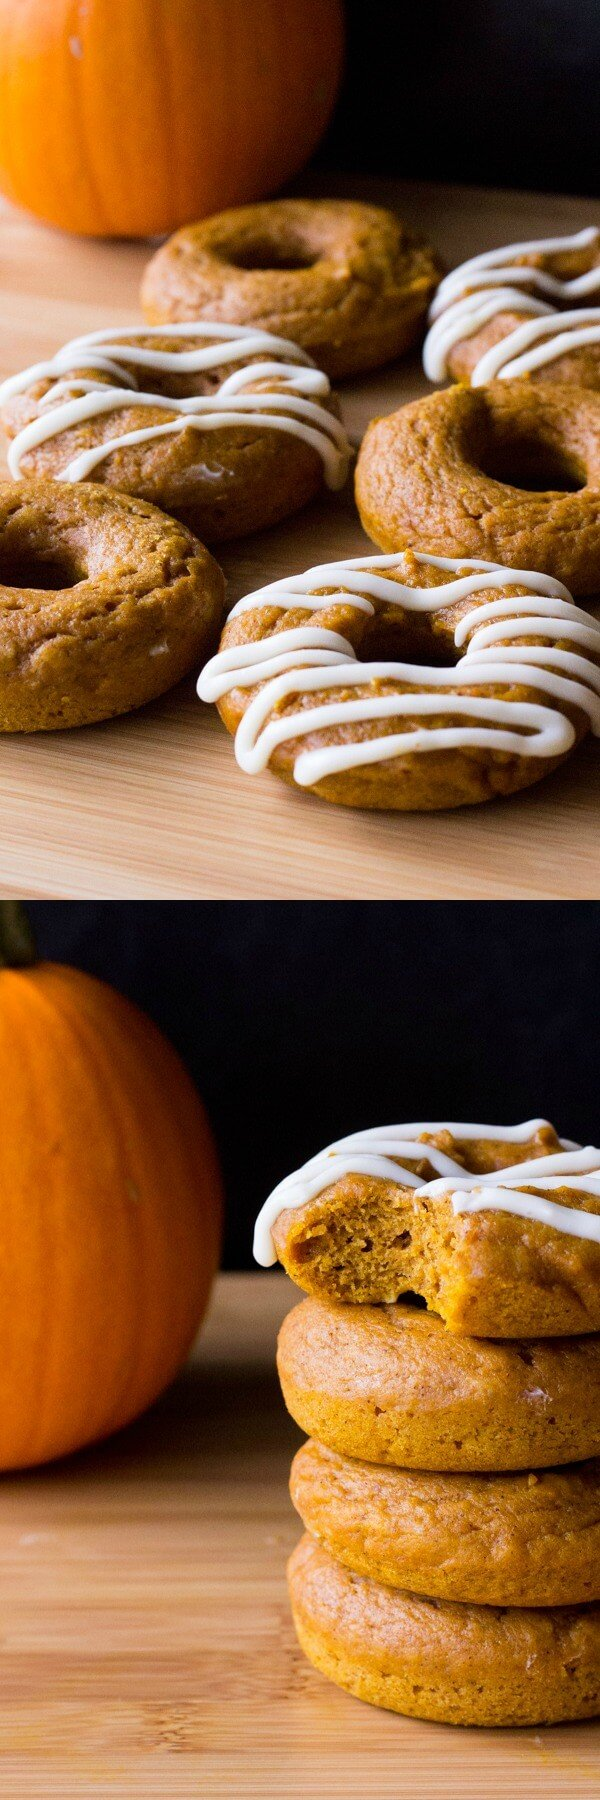 These baked pumpkin doughnuts with cream cheese glaze are the perfect fall treat. Ready in 30 minutes start to finish